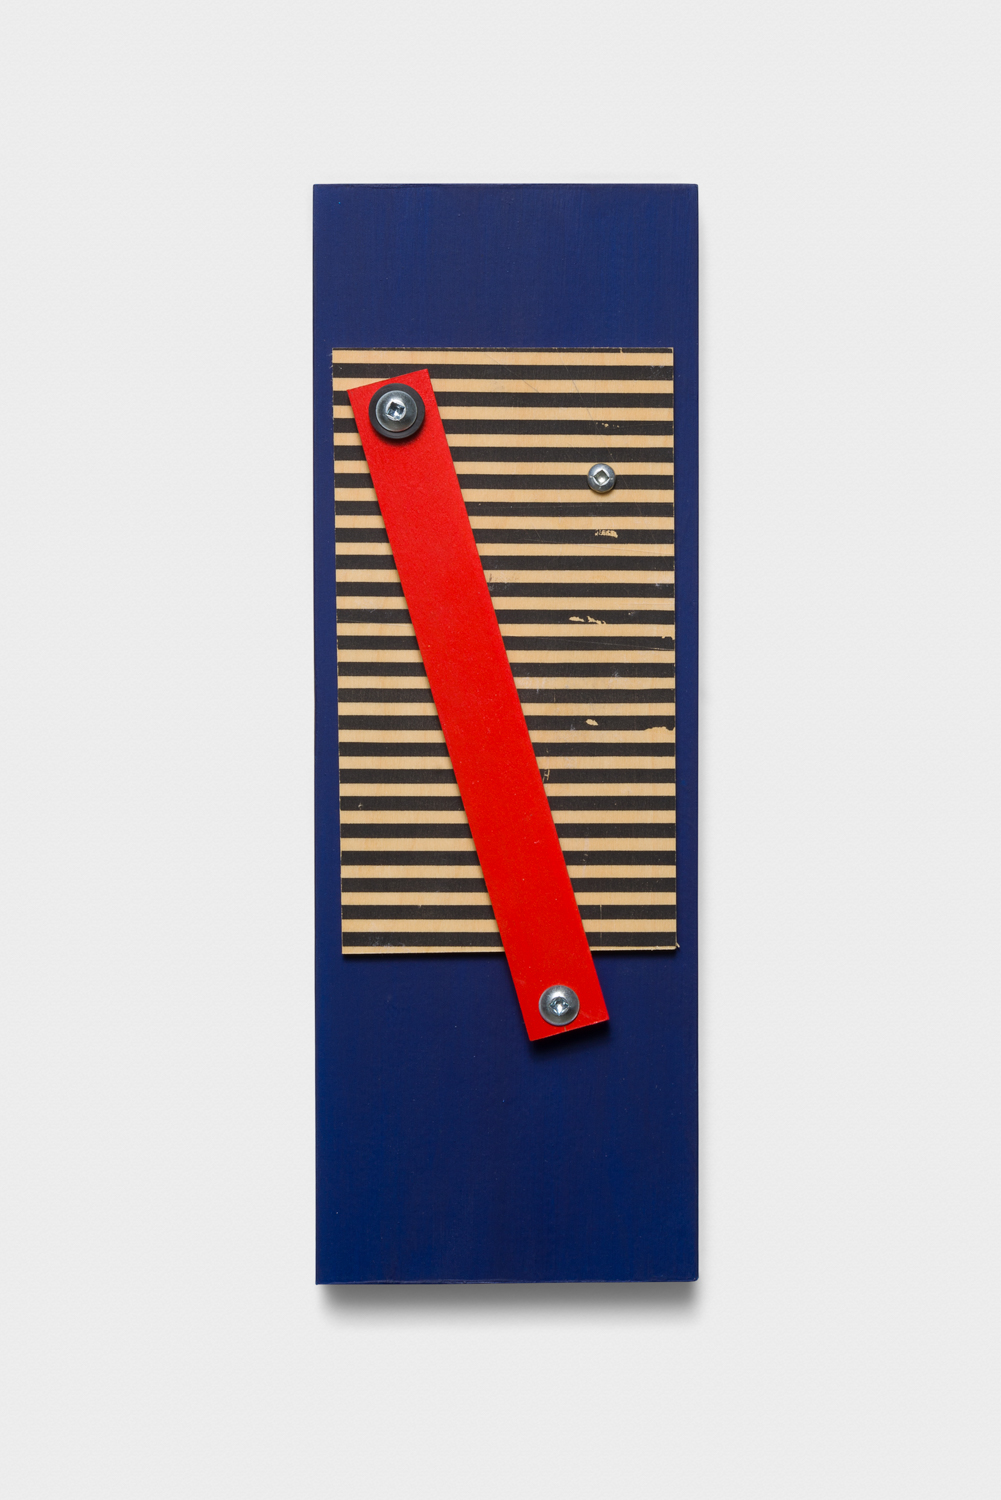 Vanessa Maltese  Chart no. 10  2014 Wood, acrylic paint, gel medium transfer, aluminum, rubber washers, hardware, chalkboard paint 10h x 3 ½w x ¾d in VM001